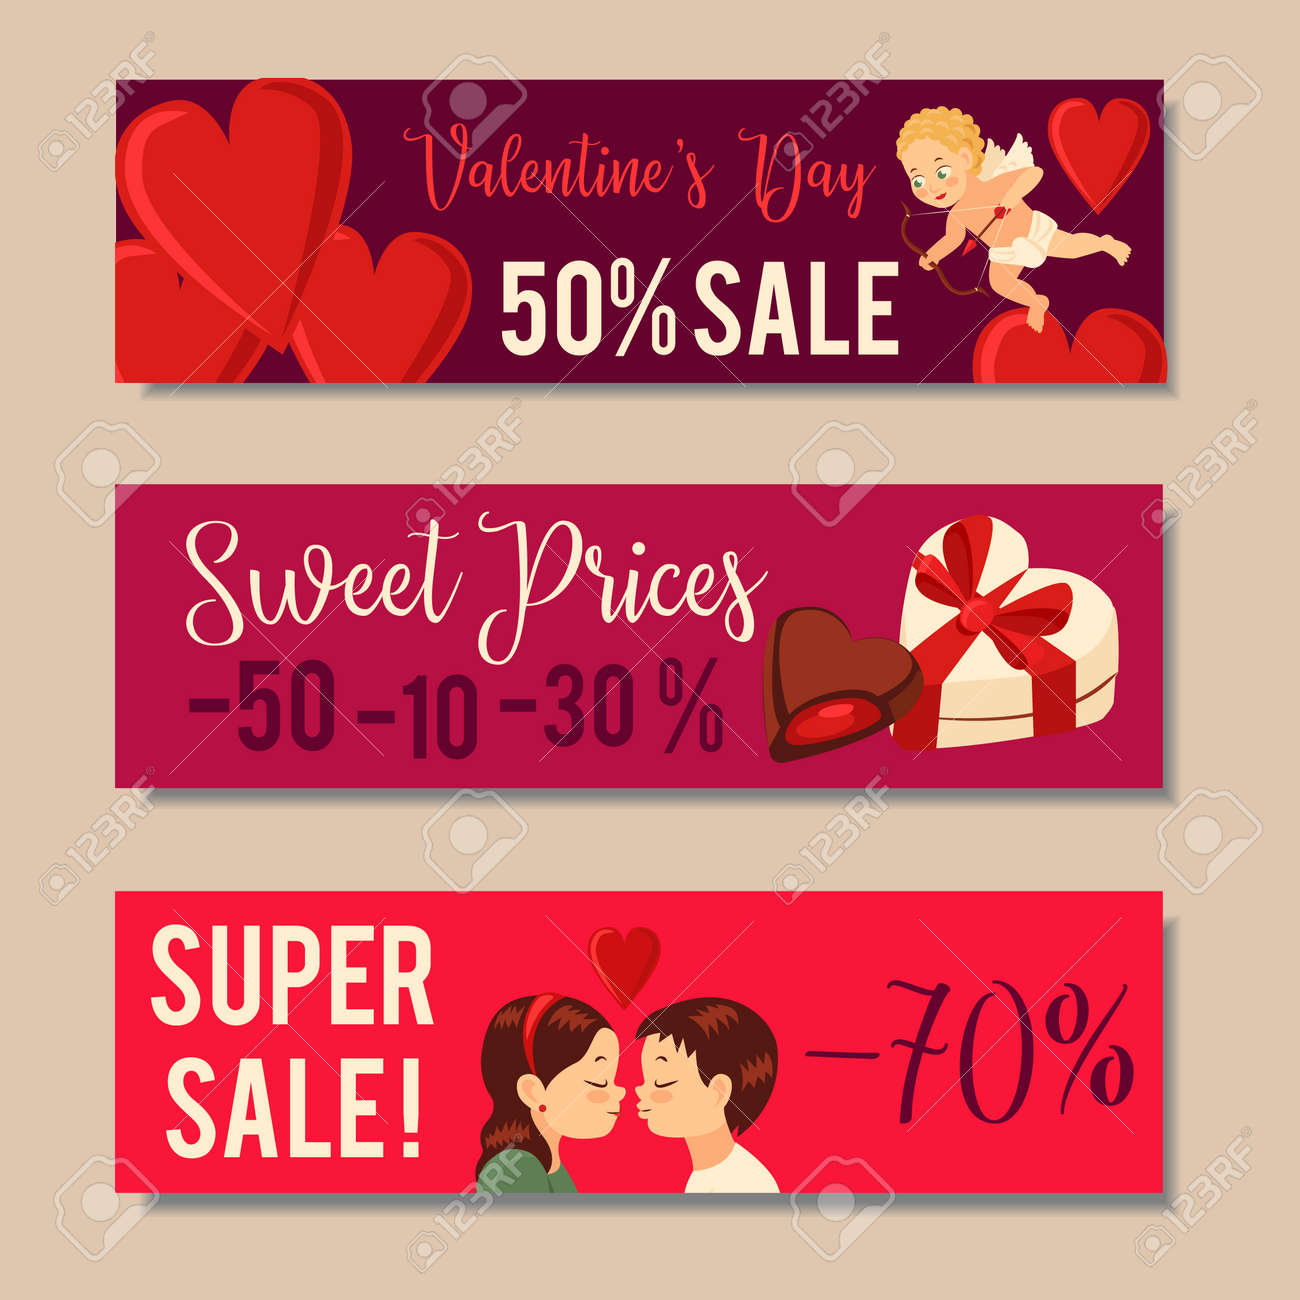 Valentines Day Sale Banners Sale Headers Design Vector Illustration